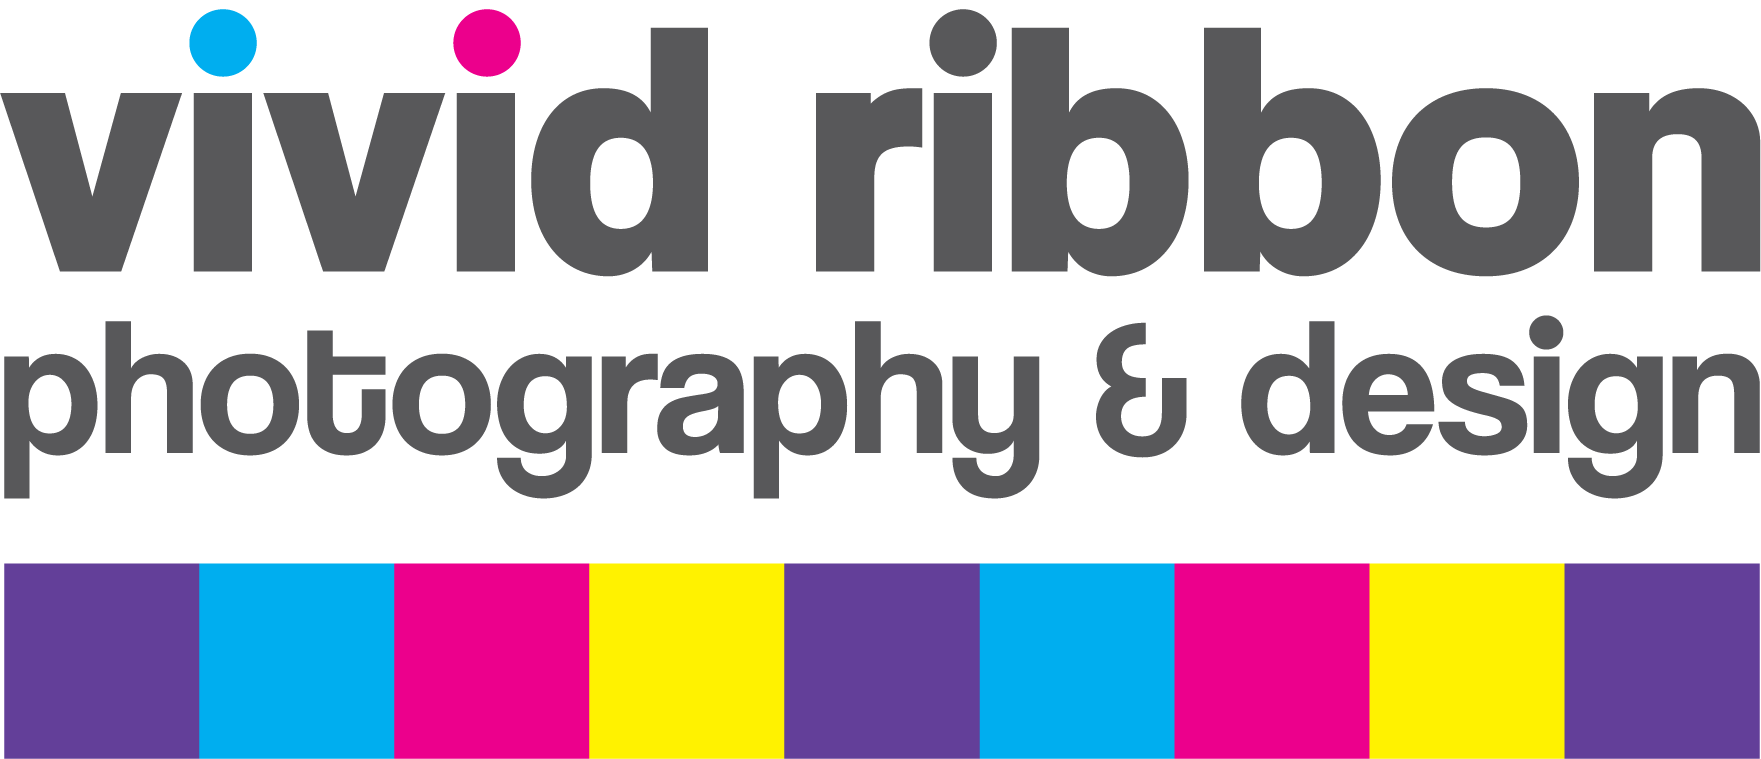 Vivid Ribbon Photography & Design